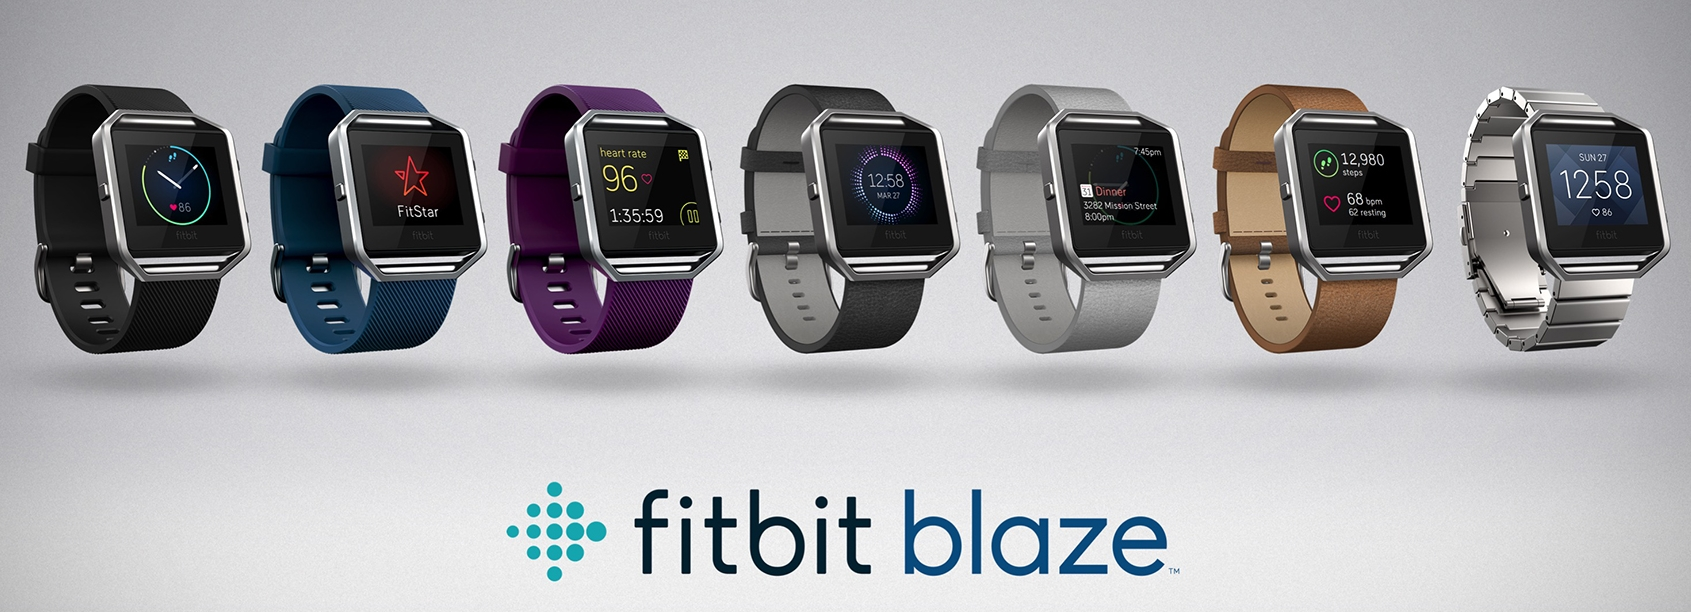 Fitbit Blazes Up with Smartwatch Launch